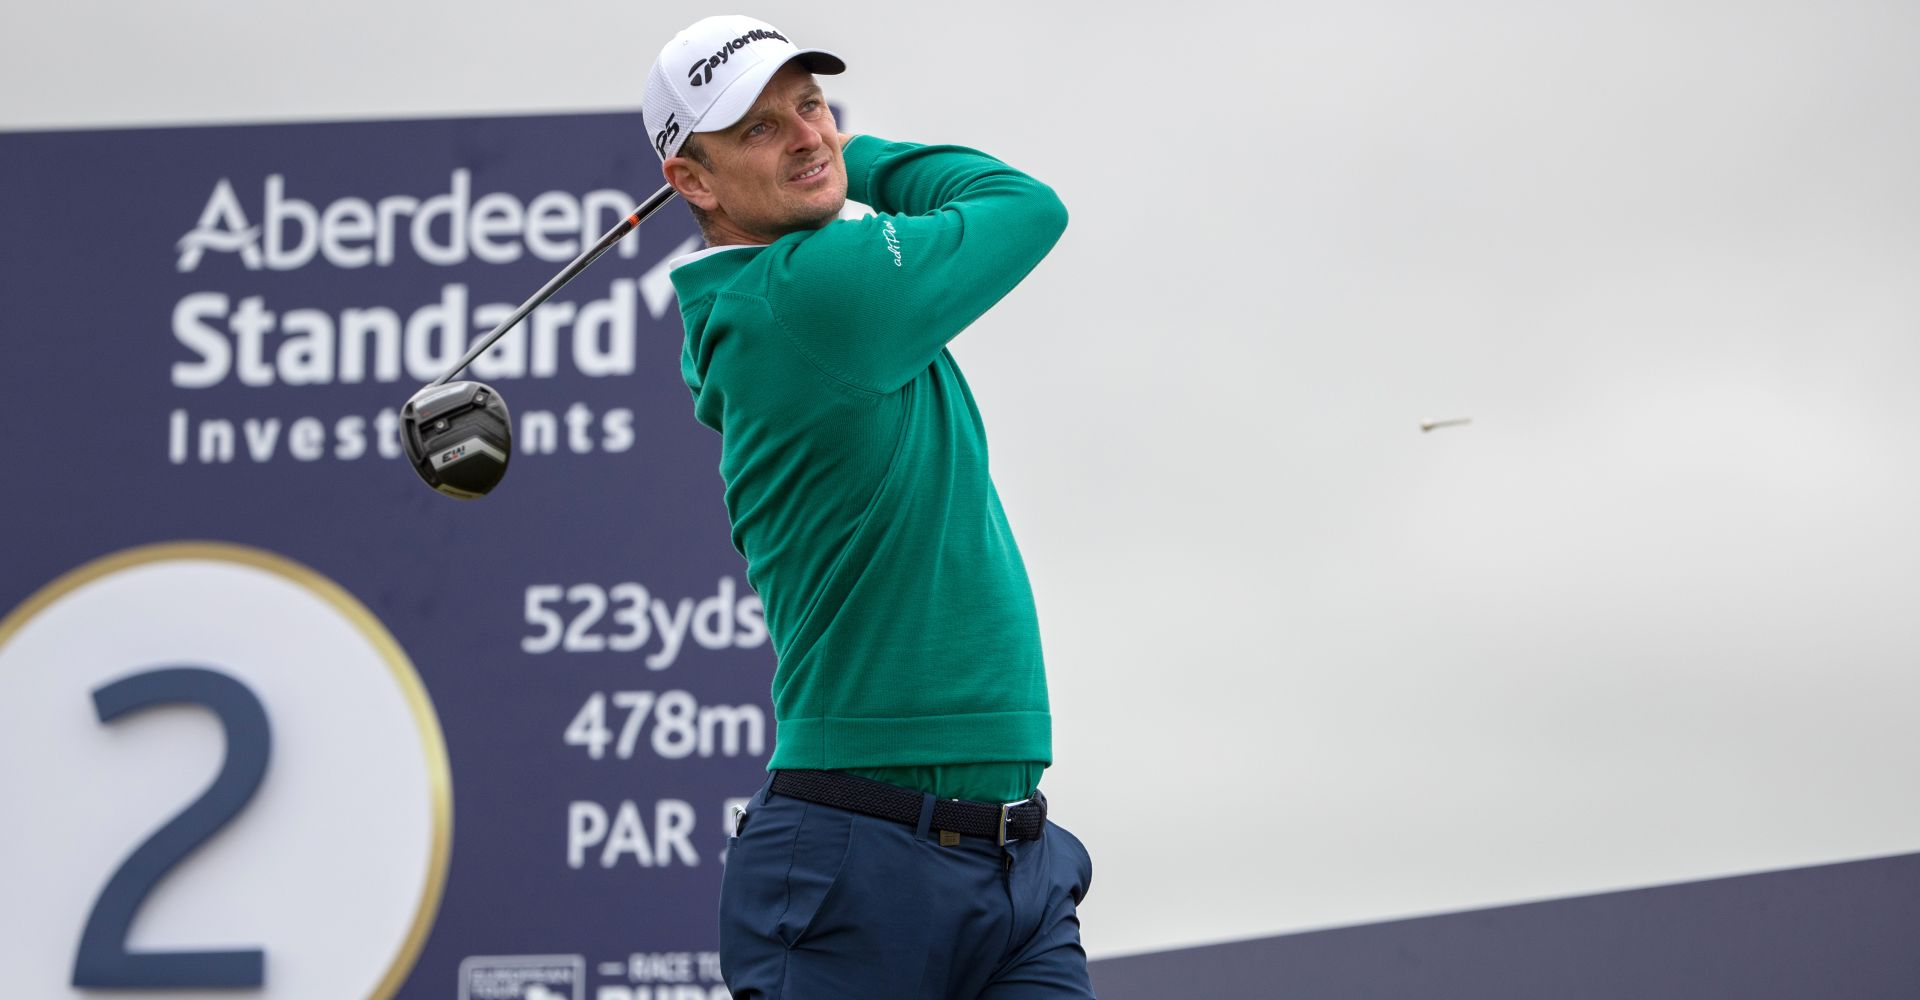 British Open 2018 1st round leader odds: Justin Rose carded four rounds of 67 or lower at Gullane